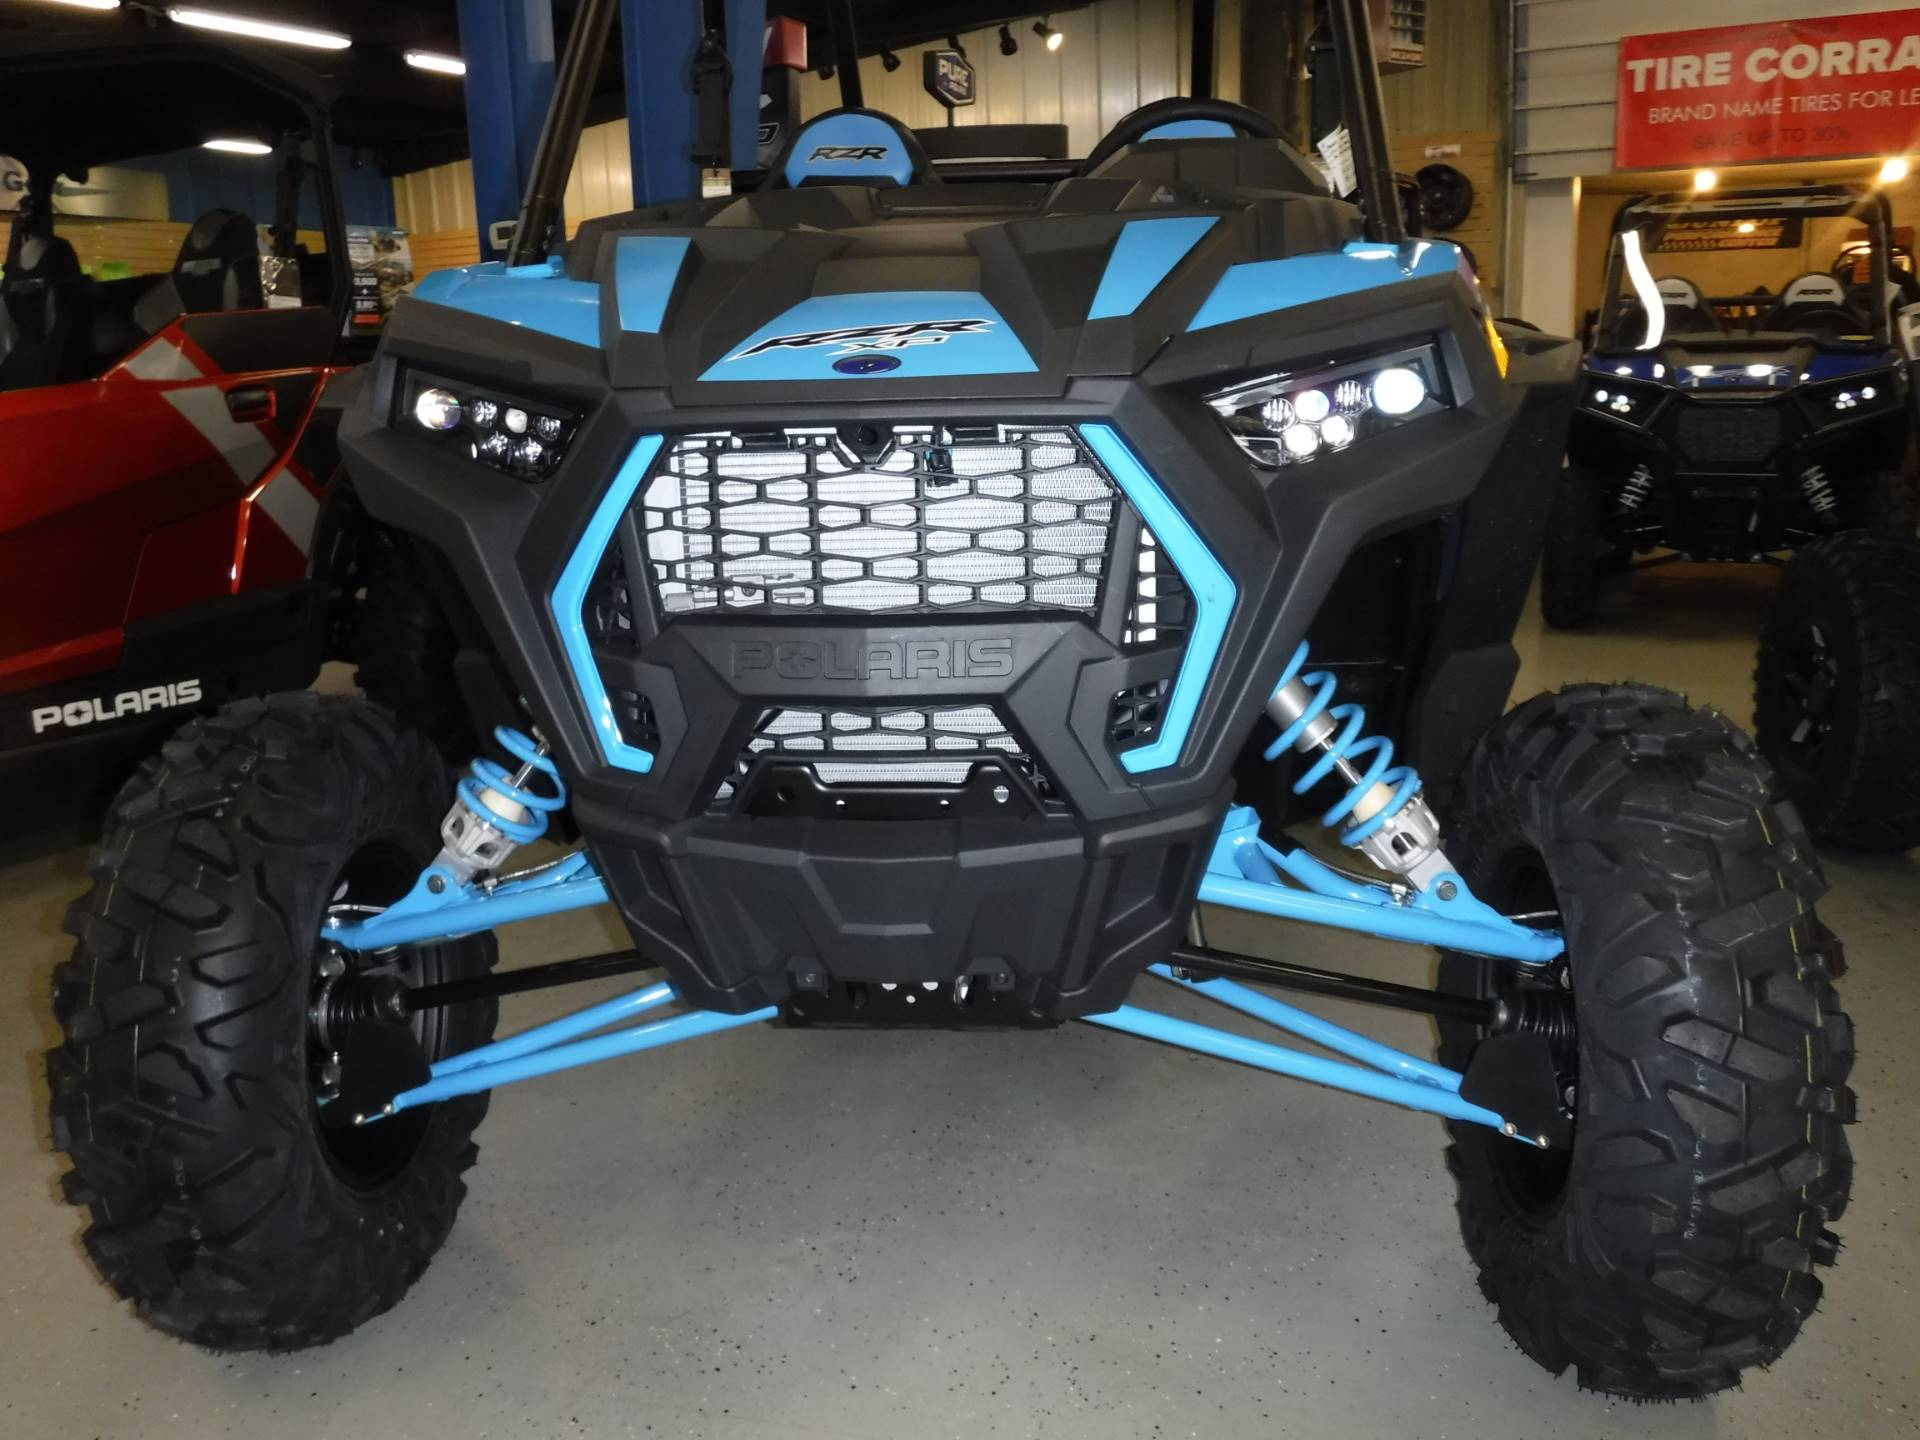 2020 Polaris RZR XP 1000 in Hermitage, Pennsylvania - Photo 2